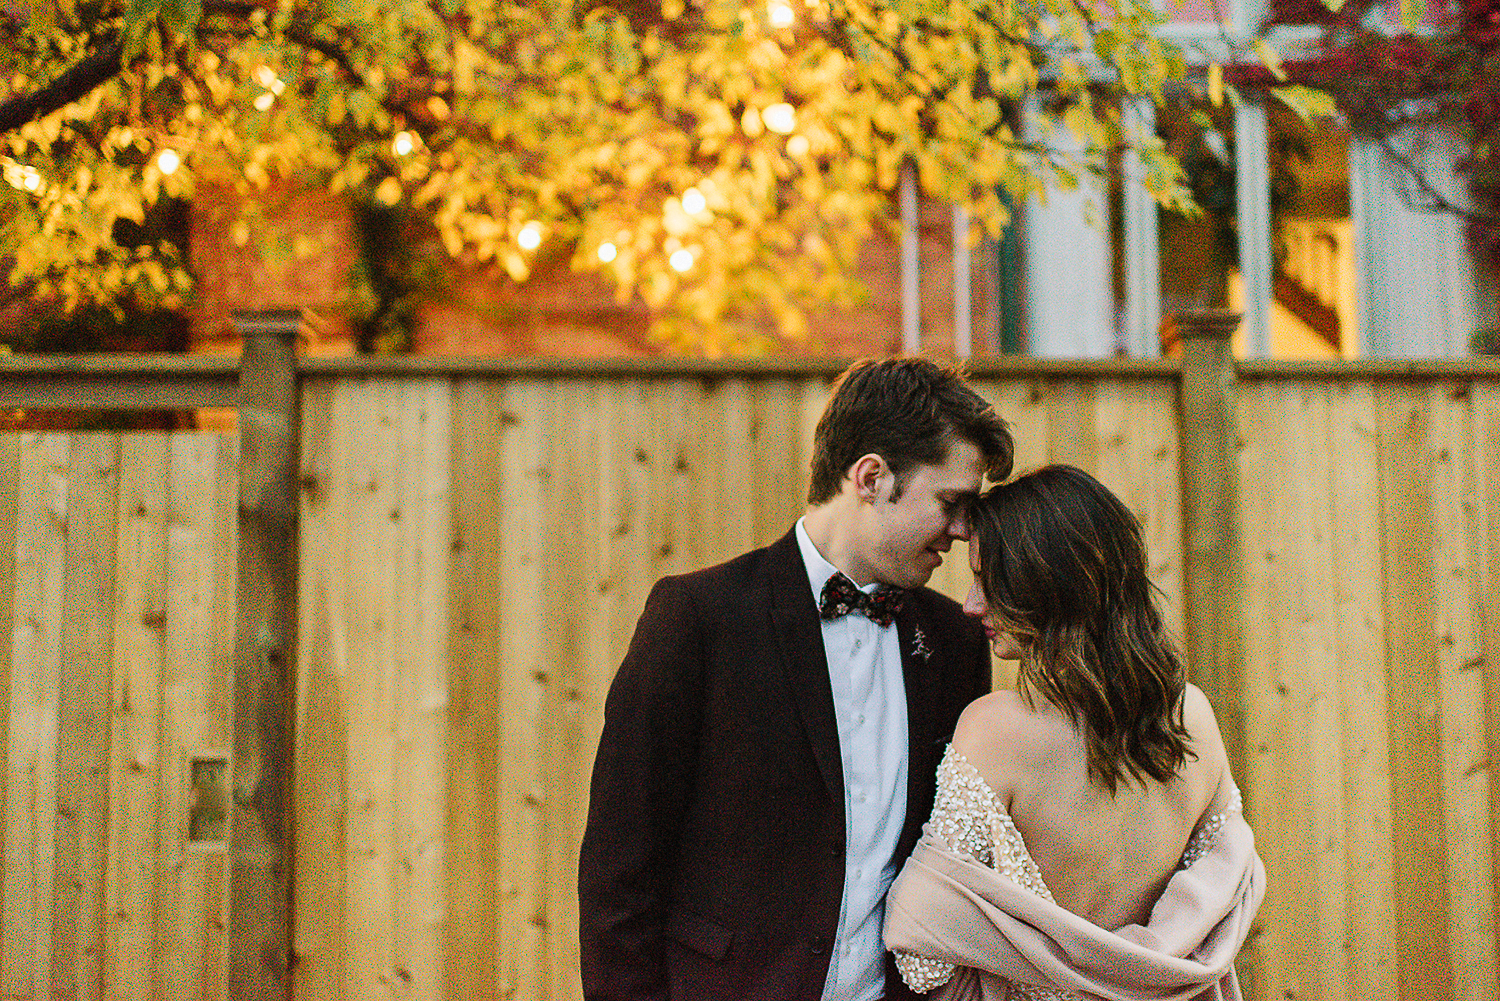 42-Best-Elopement-Photographers-Toronto-Fall-Wedding-Elopement-Modern-Vintage-Hipster-Bride-and-Groom-Coffee-shop-.JPG